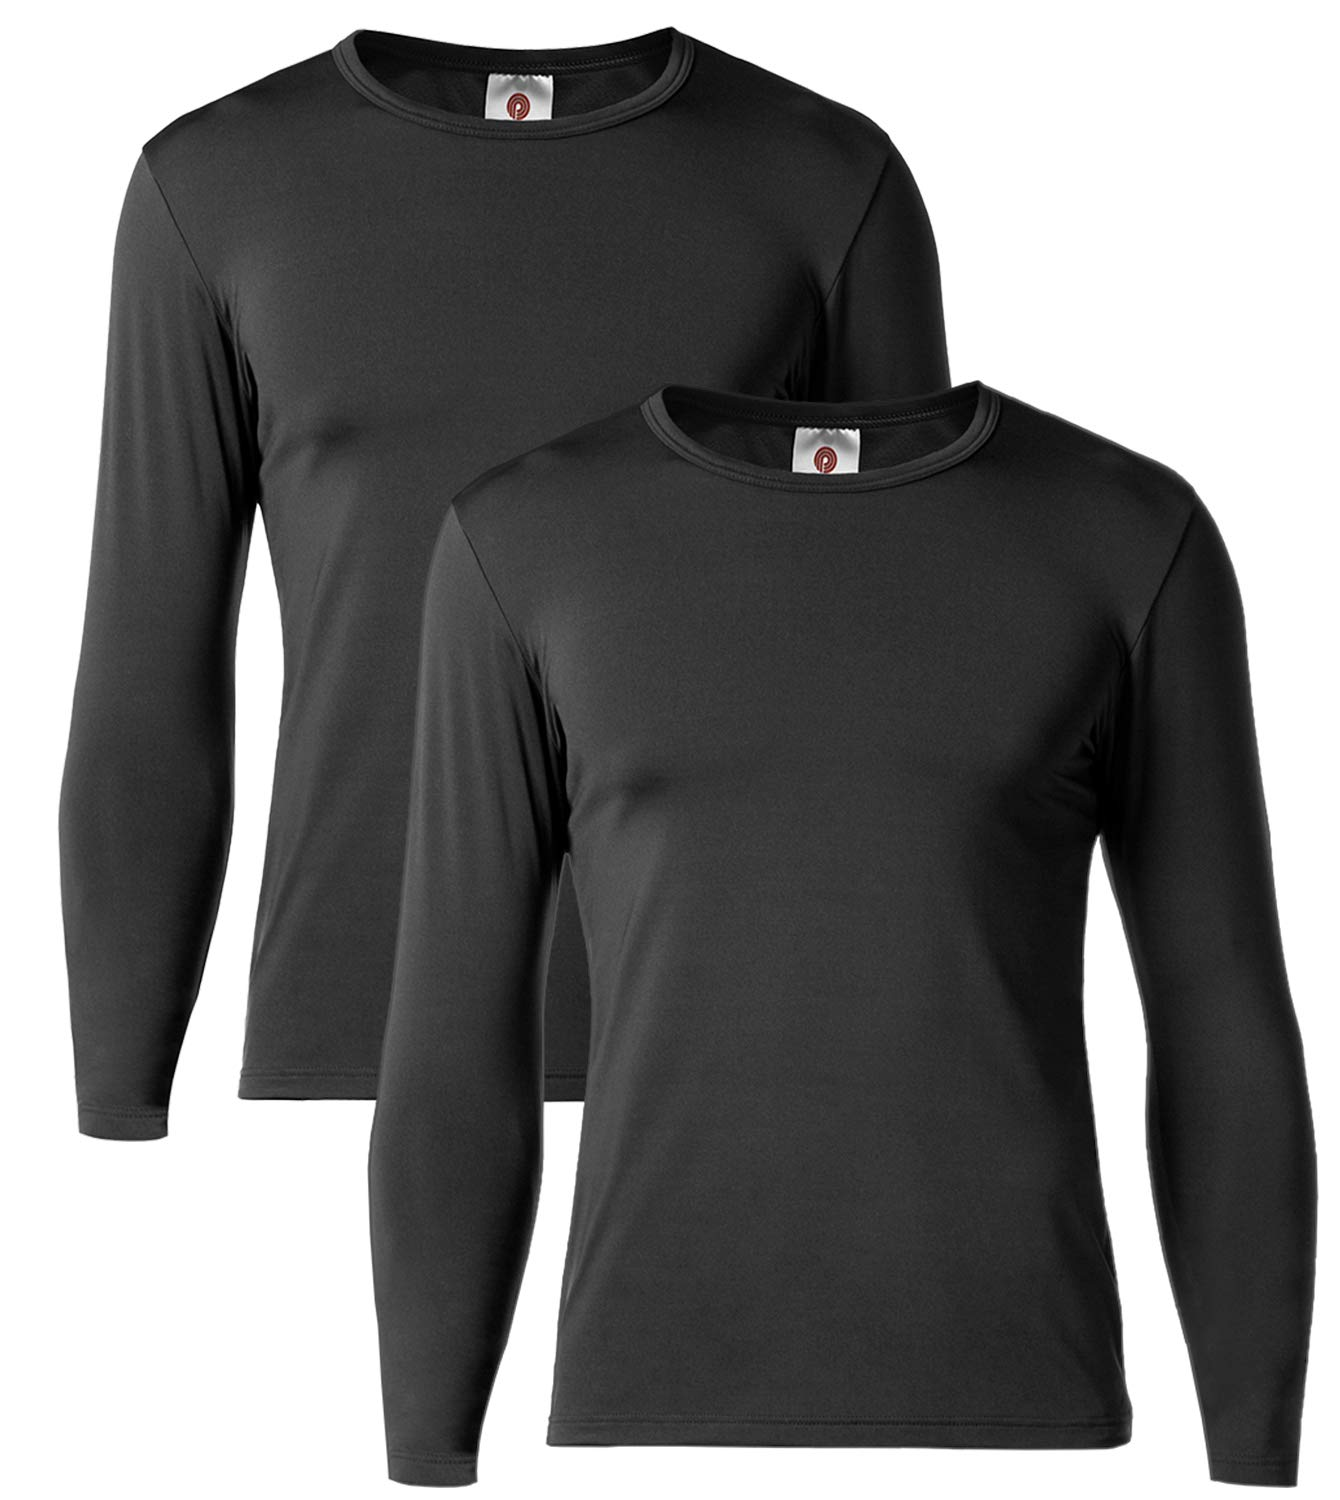 LAPASA Men's Thermal Underwear Tops Fleece Lined Base Layer Long Sleeve Shirts 2 Pack M55 (L Chest 41''-43'' Sleeve 23.6'', Midweight Black) by LAPASA